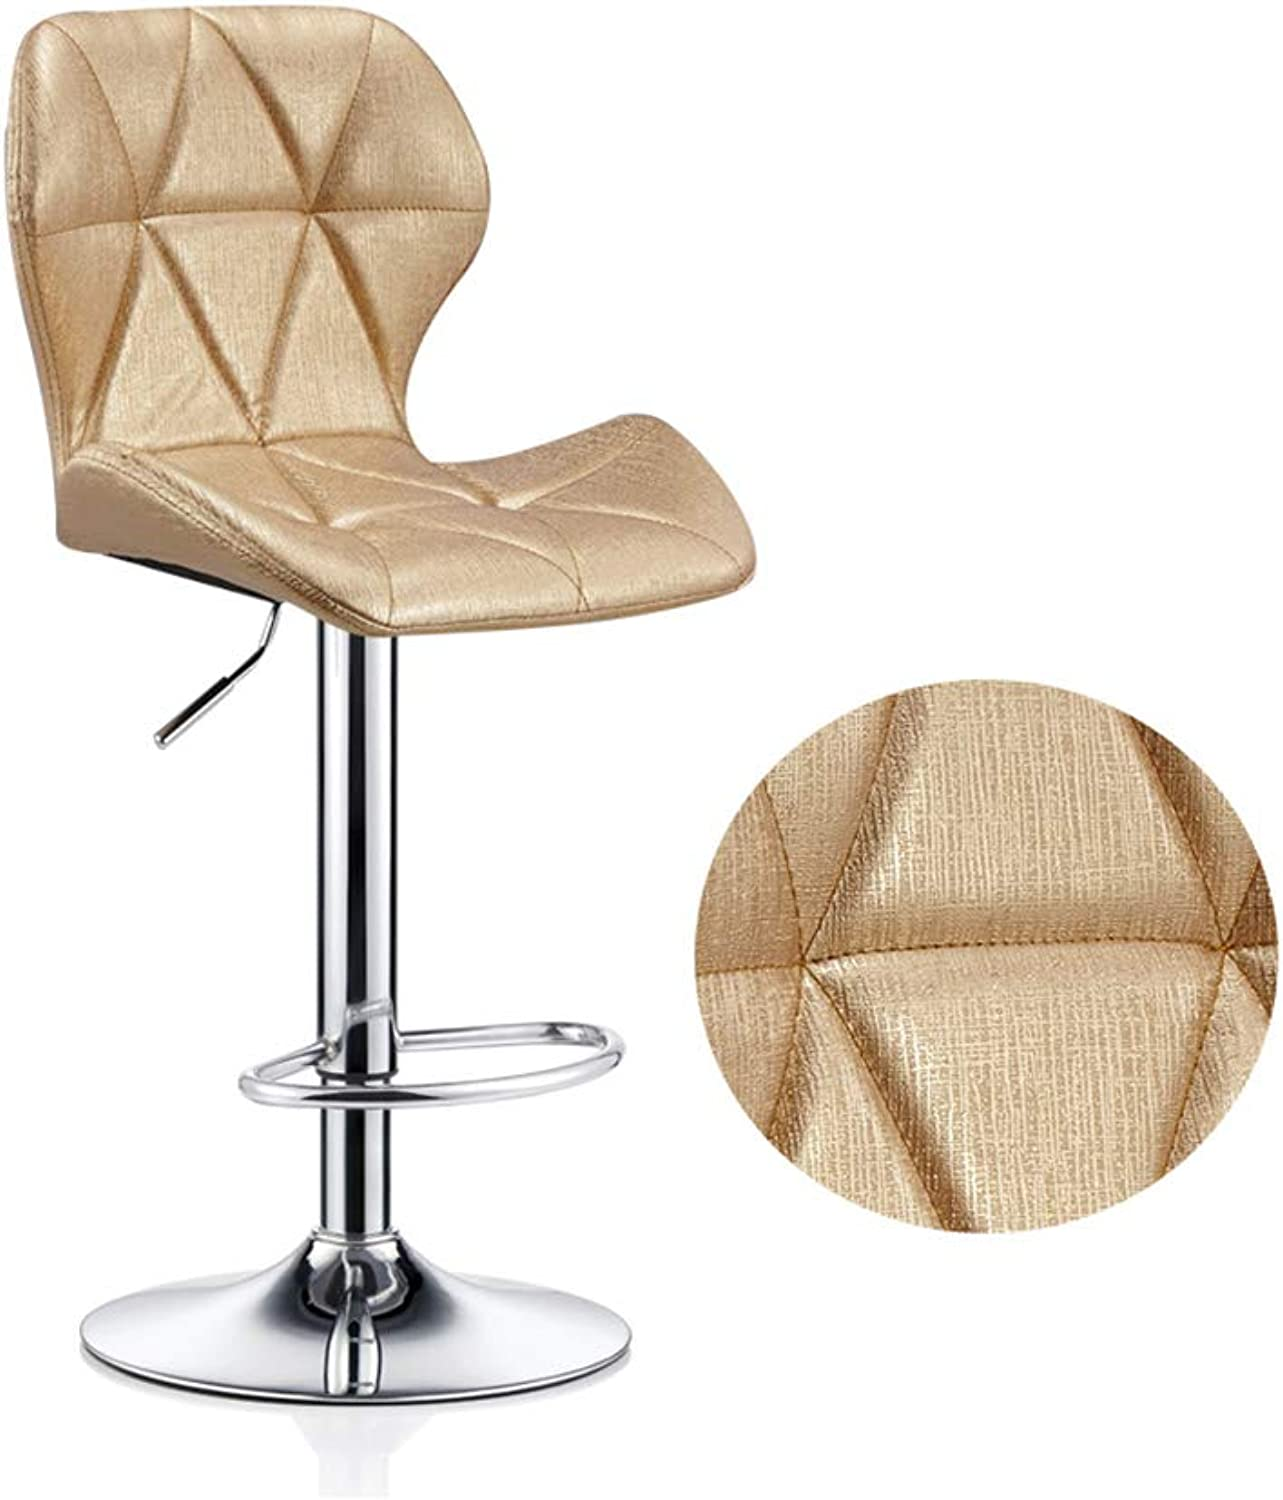 NUBAO Barstool, Restaurant High Stools, Safety Stool, Counter Chair, redate Lift Cushion Integrated 60-80cm Suitable for 90-120cm Bar Counter (color   gold)